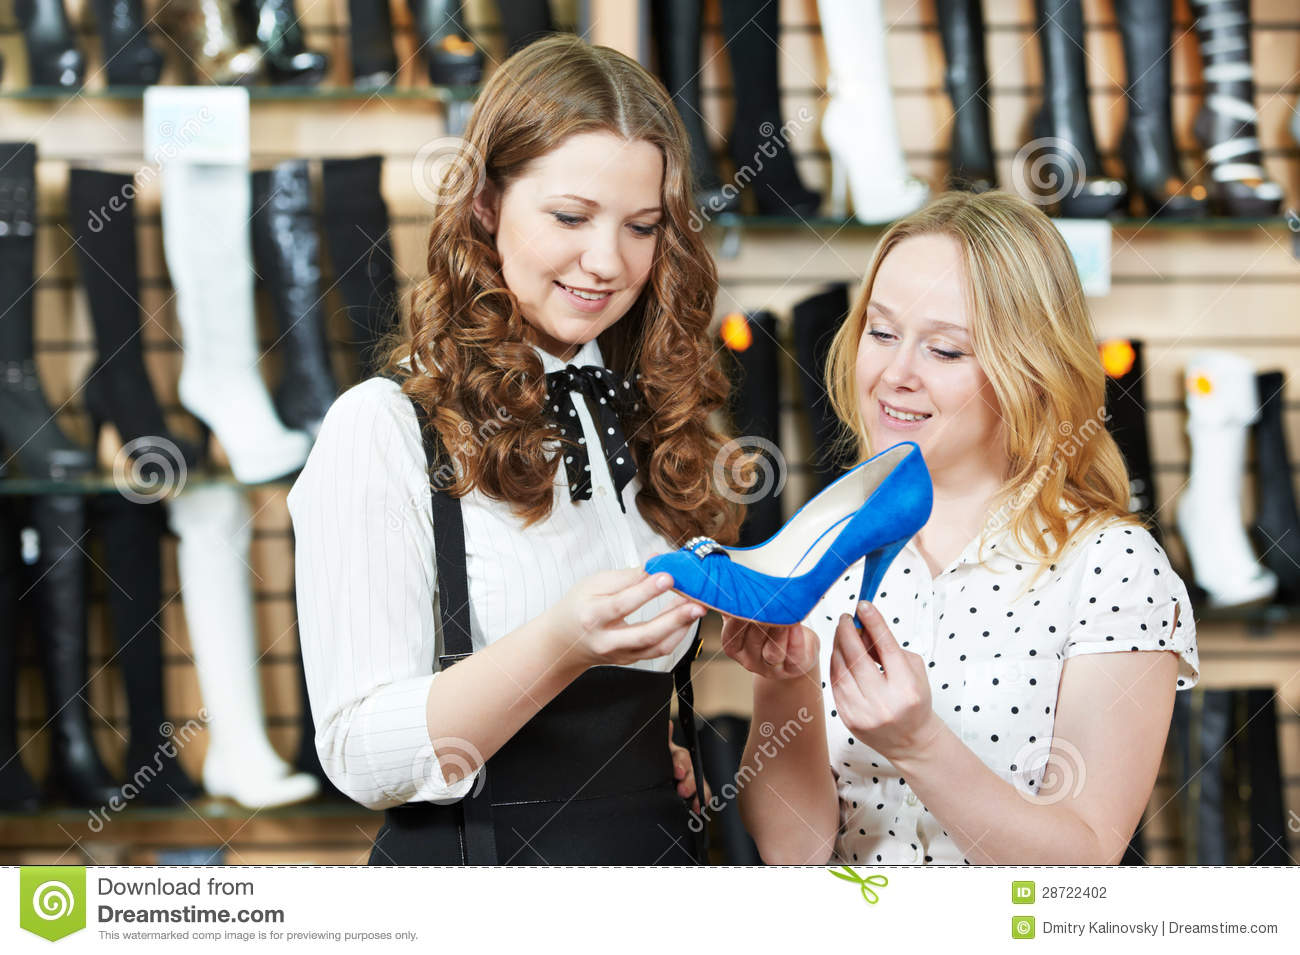 Cheap shoes online Womens shoe stores